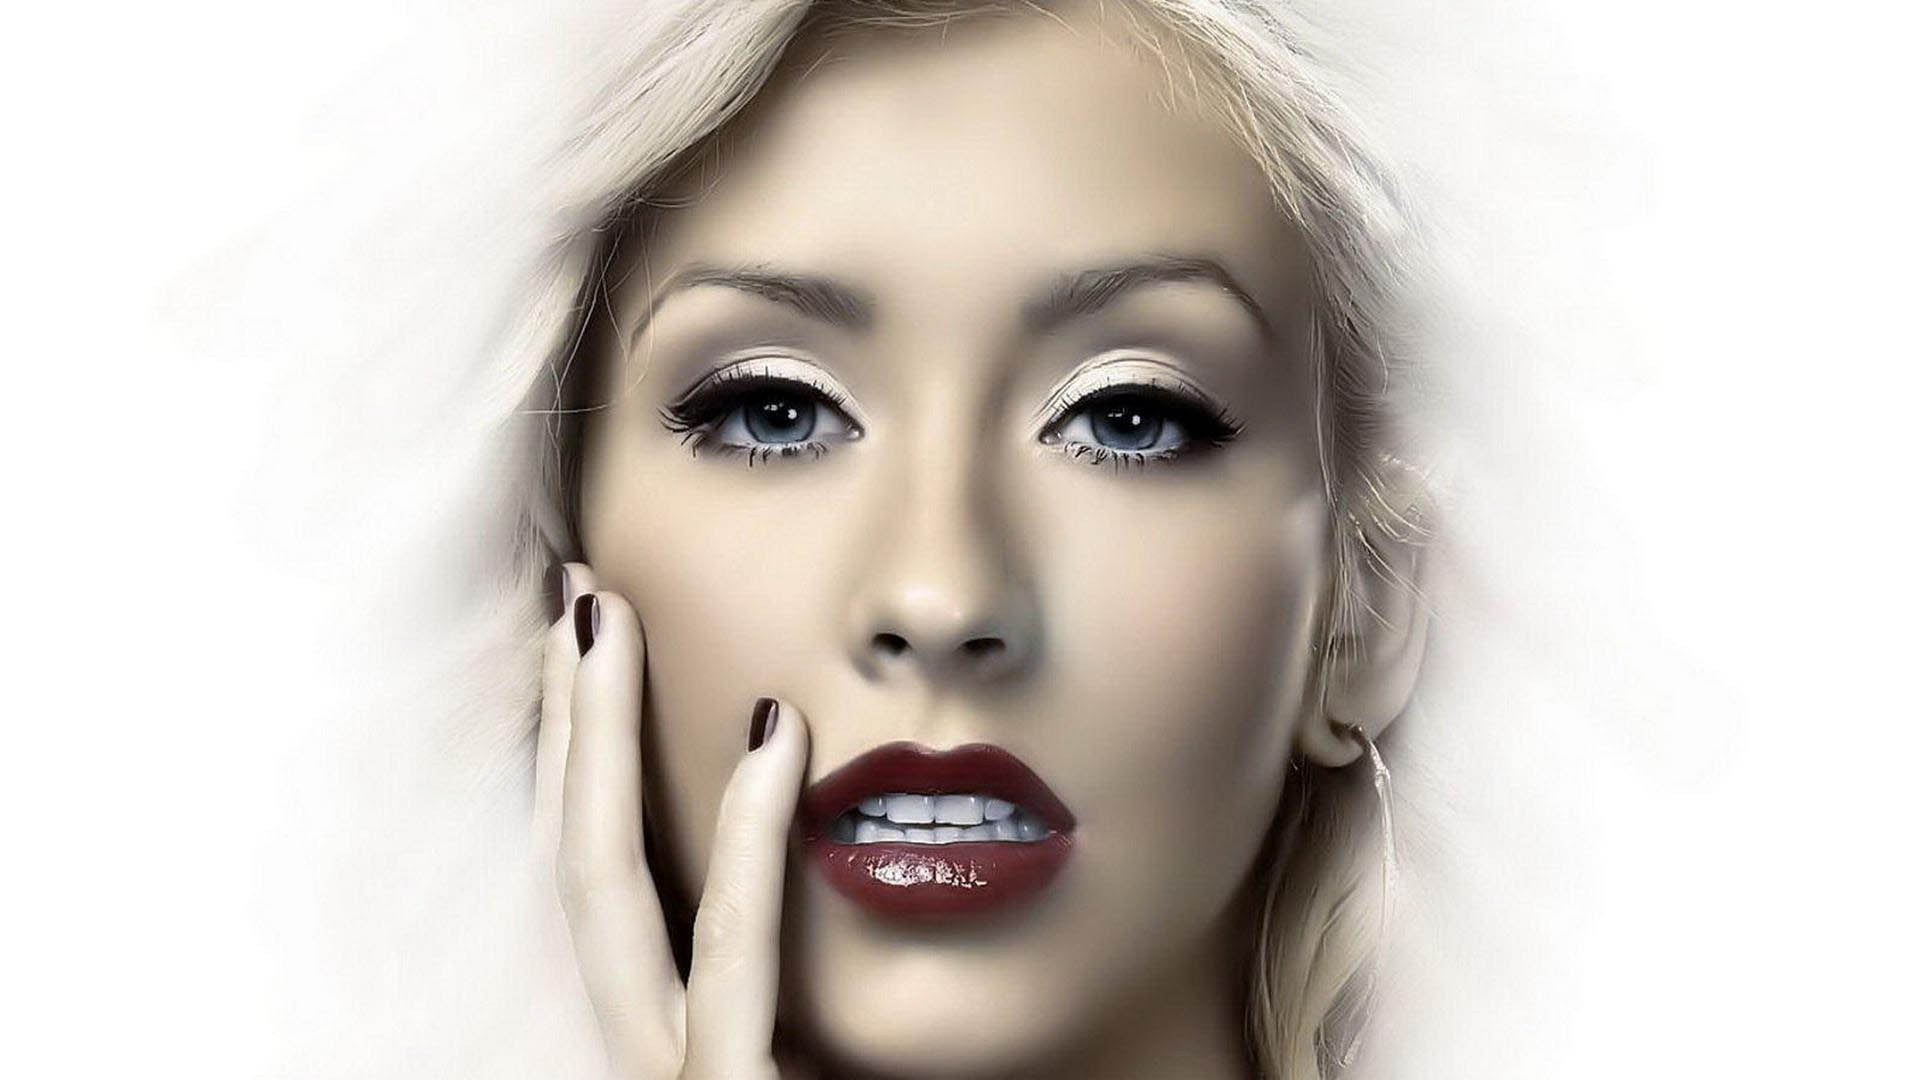 Beauty Muse Christina Aguilera fashionandstylepolice 1920x1080